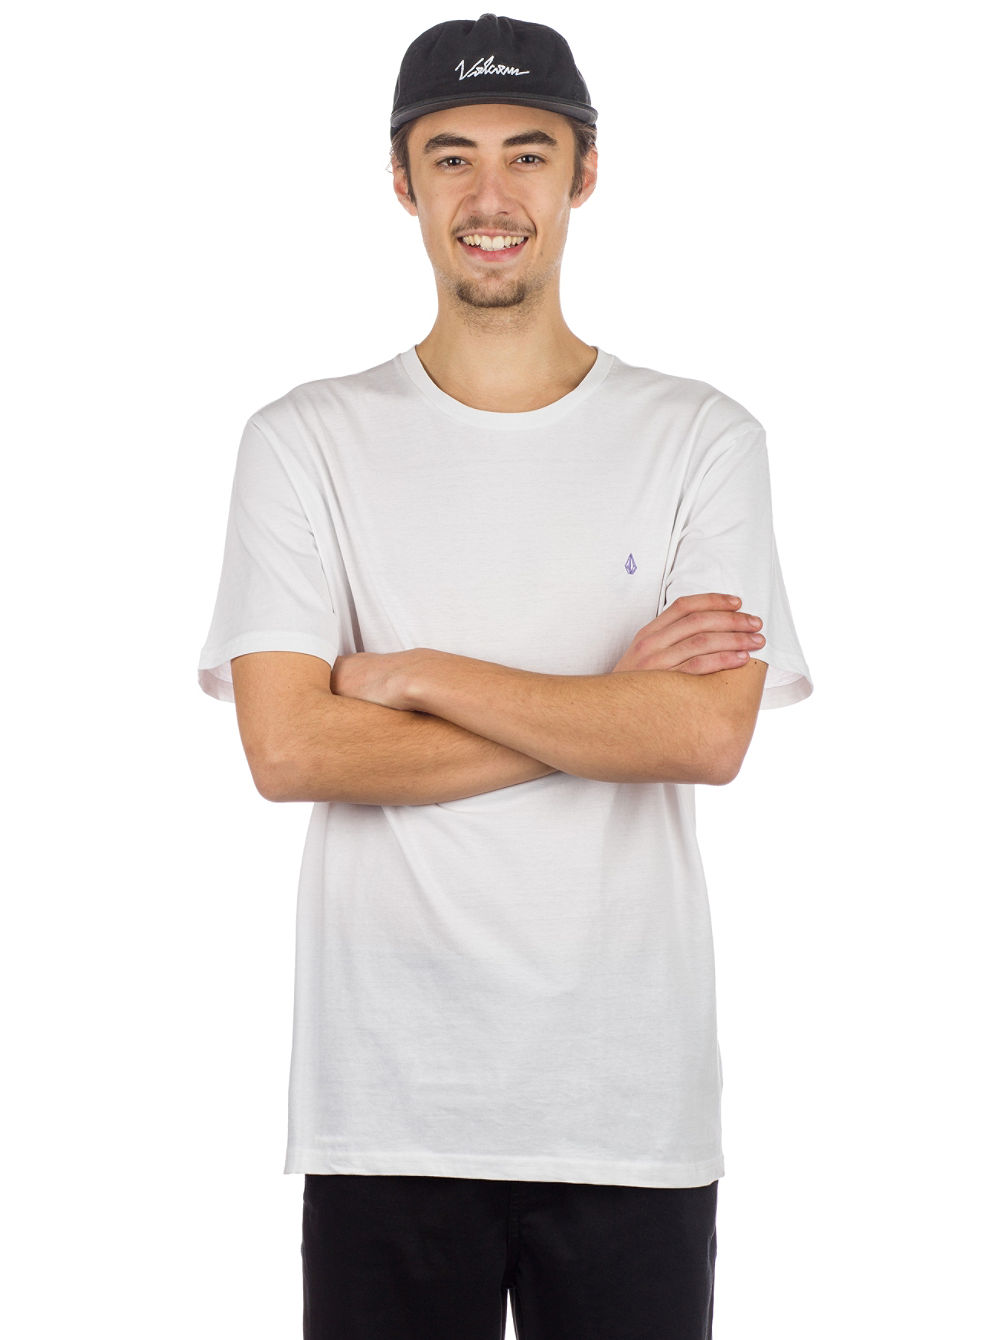 Stone Blank Bsc T-Shirt